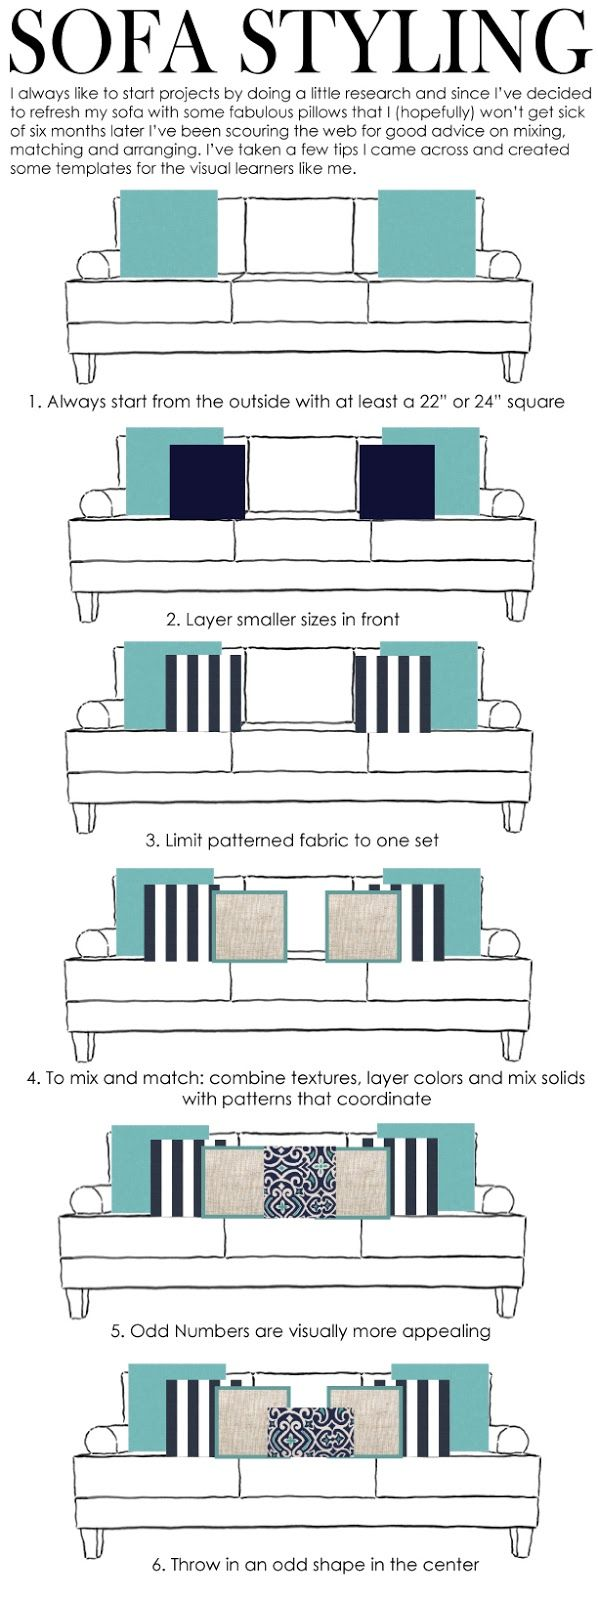 almofadas_decor_sofa